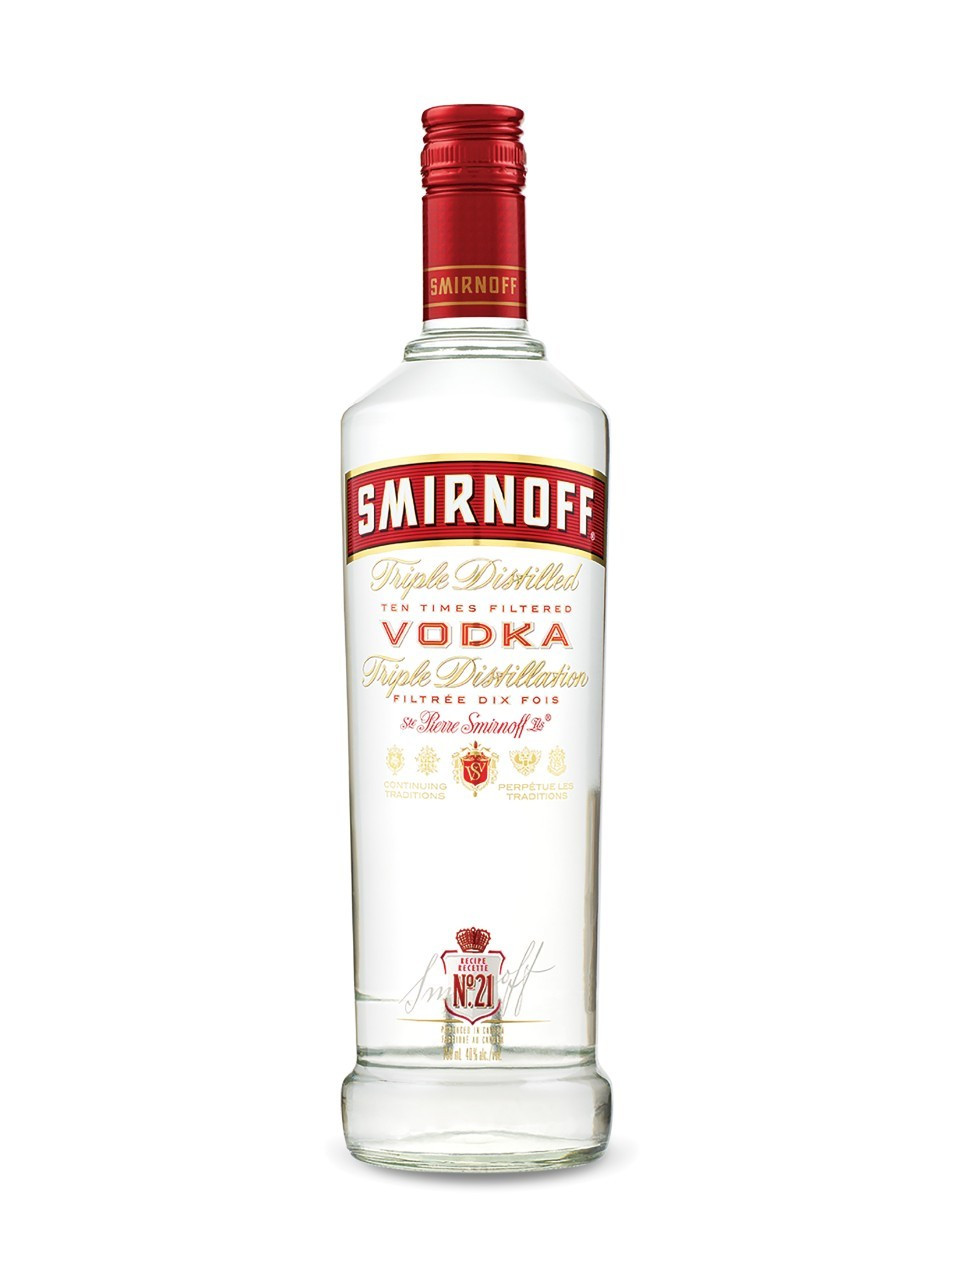 Bottle of smirnoff vodka